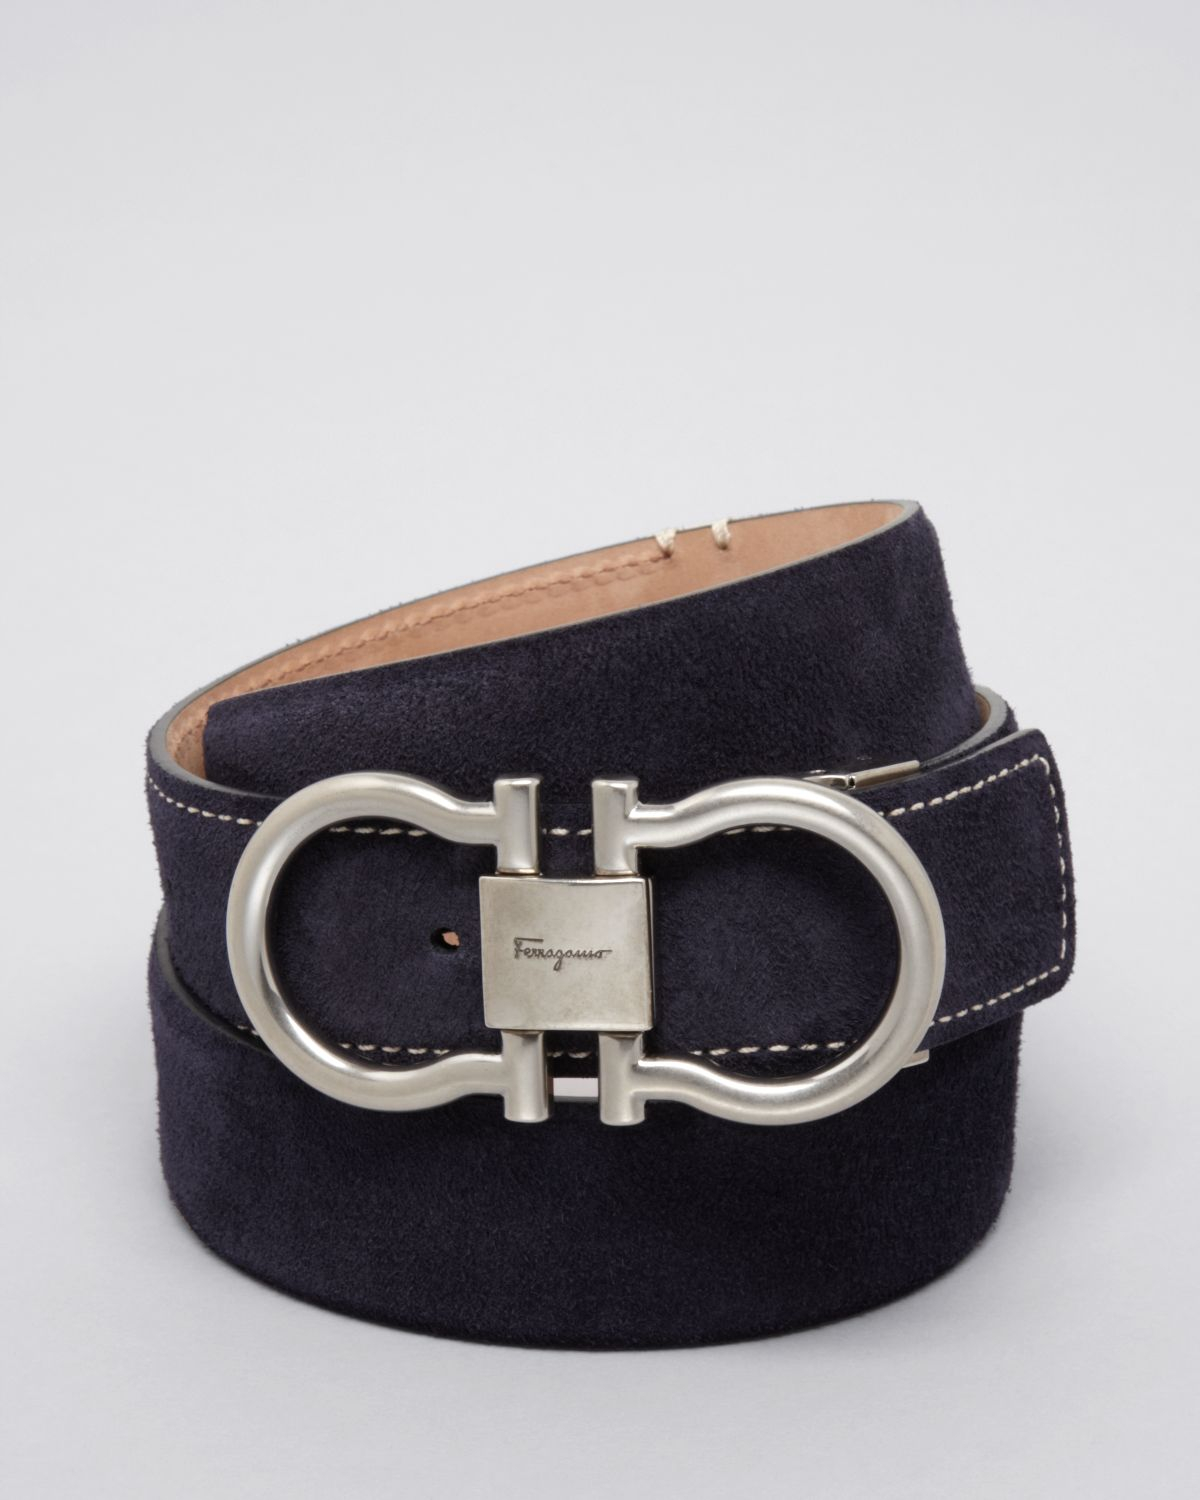 3cb2e4807f291 ... shop lyst ferragamo suede double gancini belt in blue for men 4dc3c  69b2a